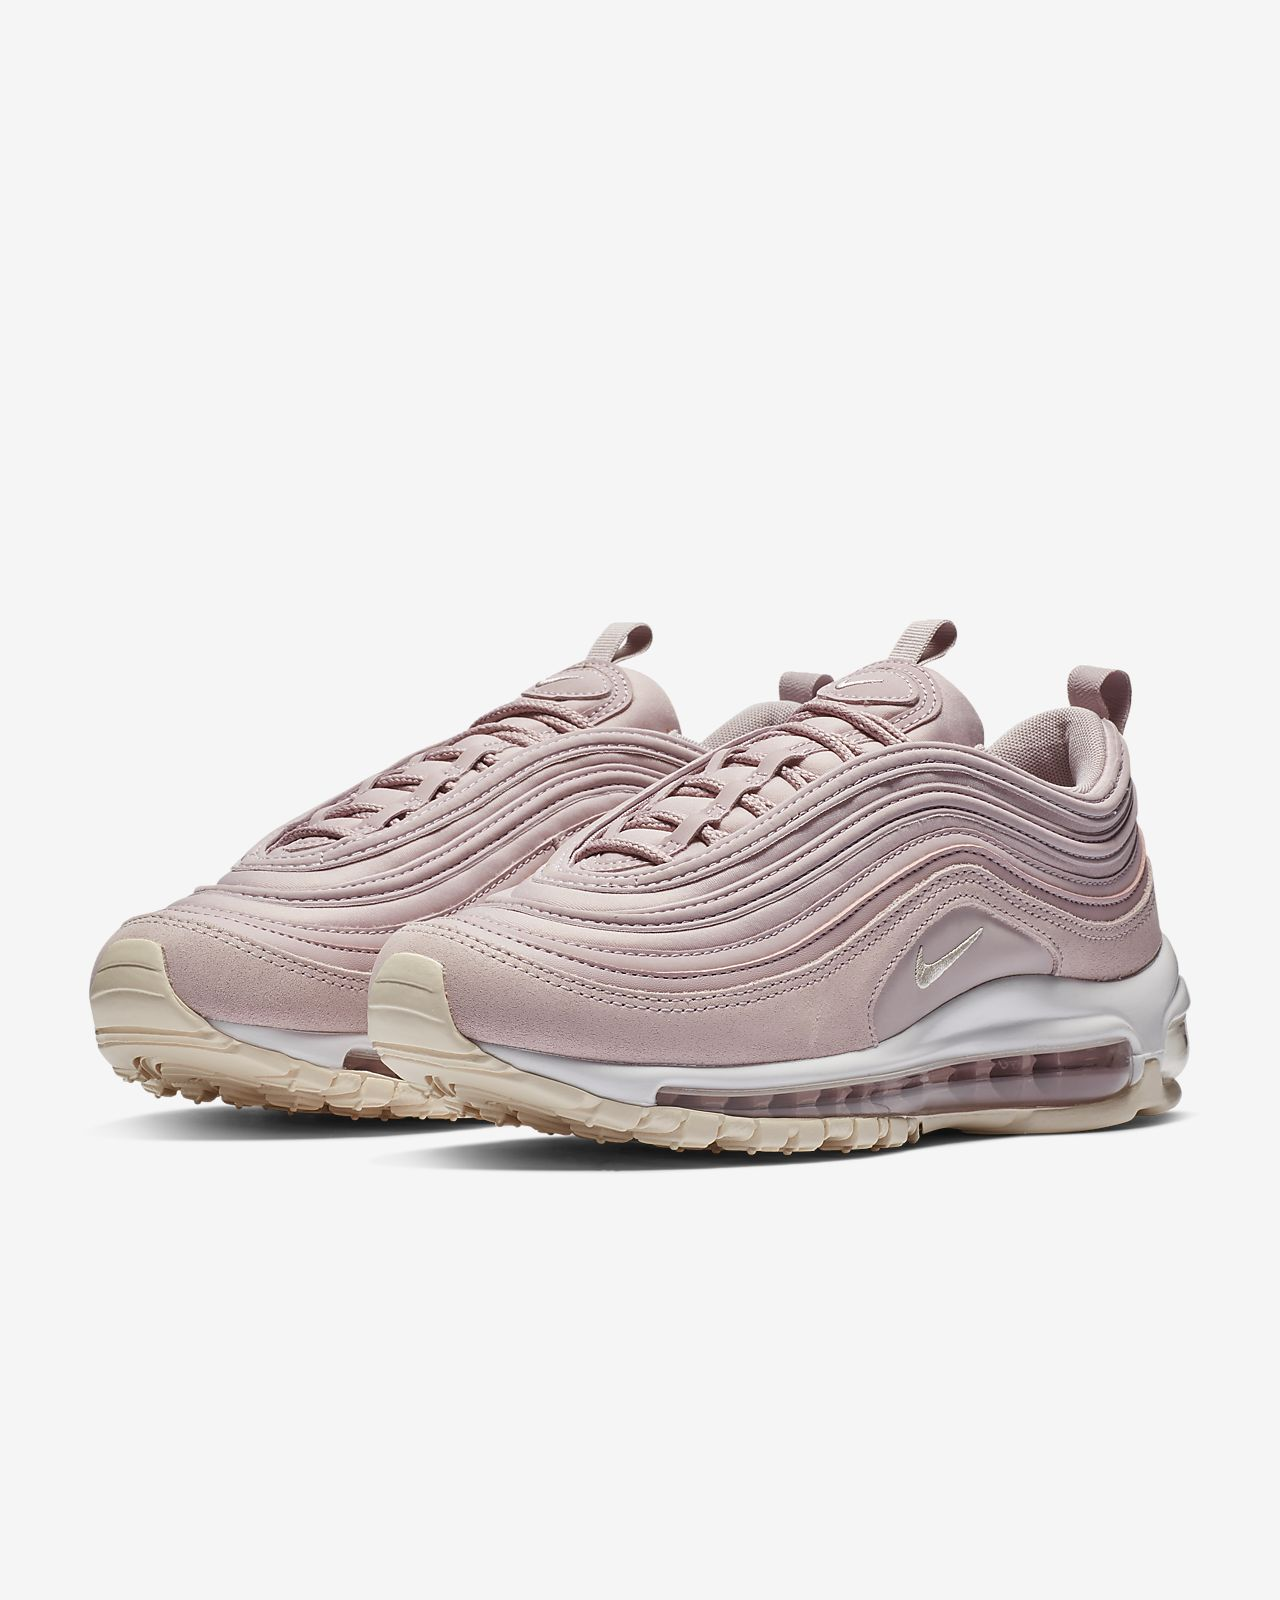 brand new 72c1e b4123 ... Nike Air Max 97 Premium Womens Shoe